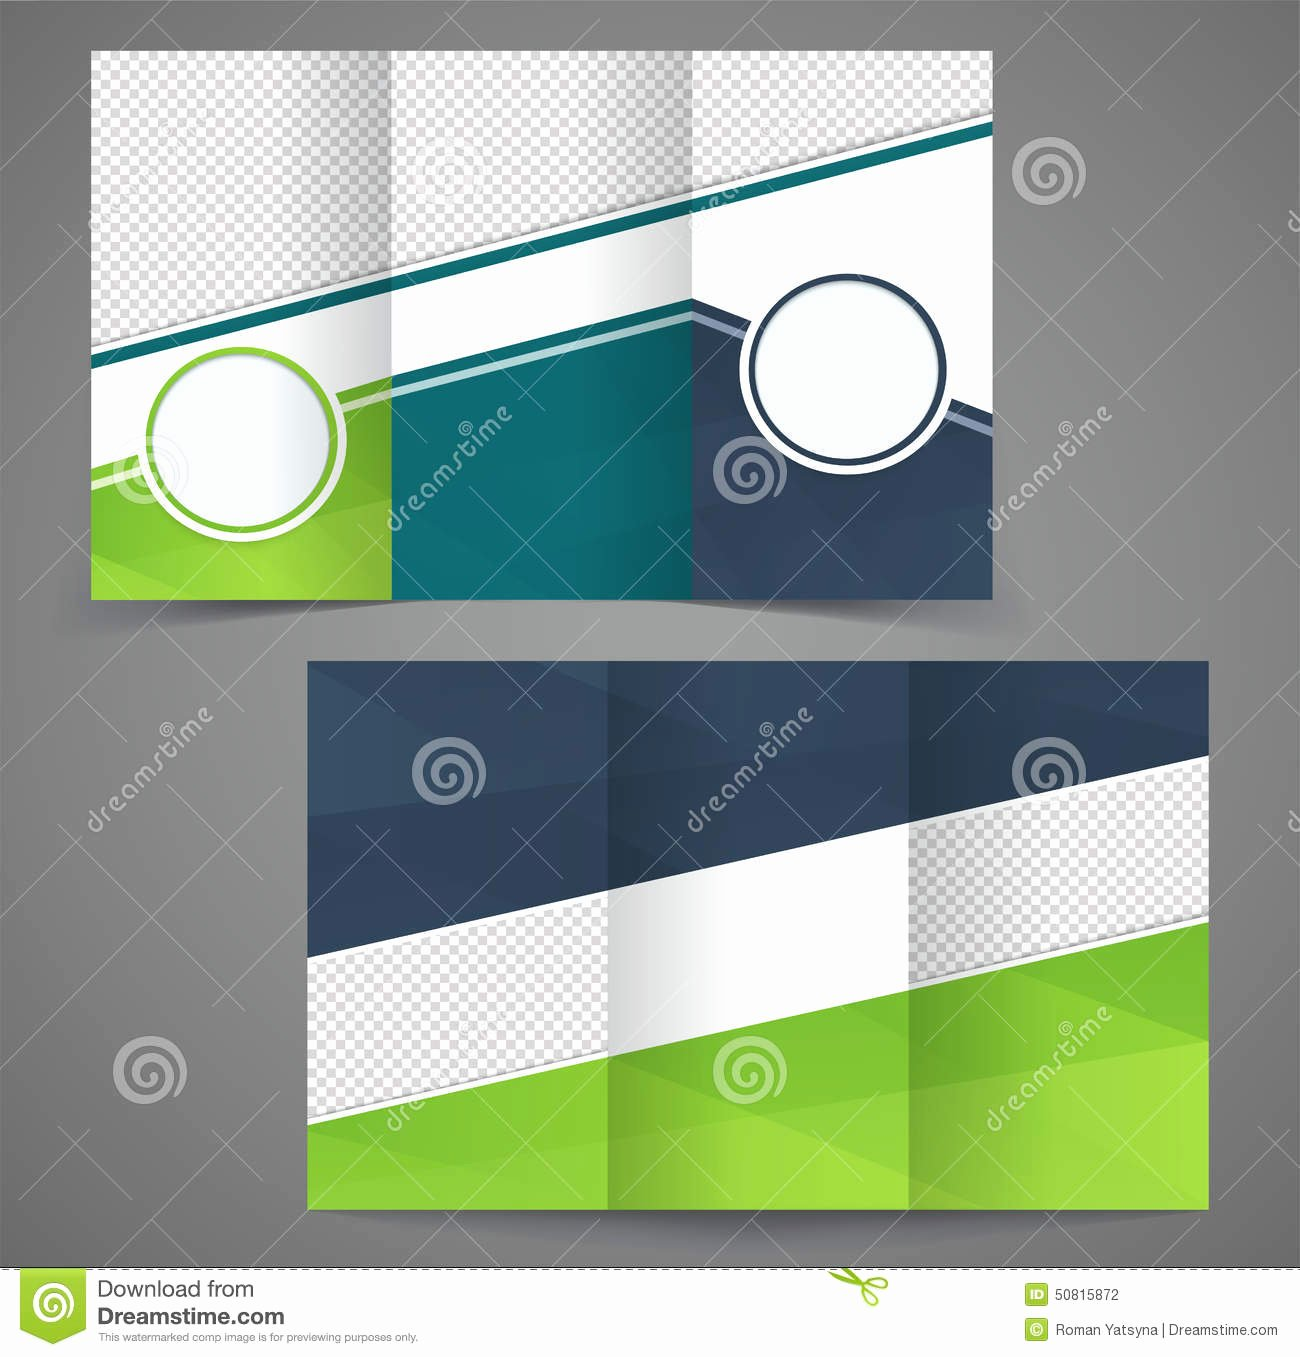 stock illustration tri fold business brochure template two sided template design mock up cover dark blue green colors image